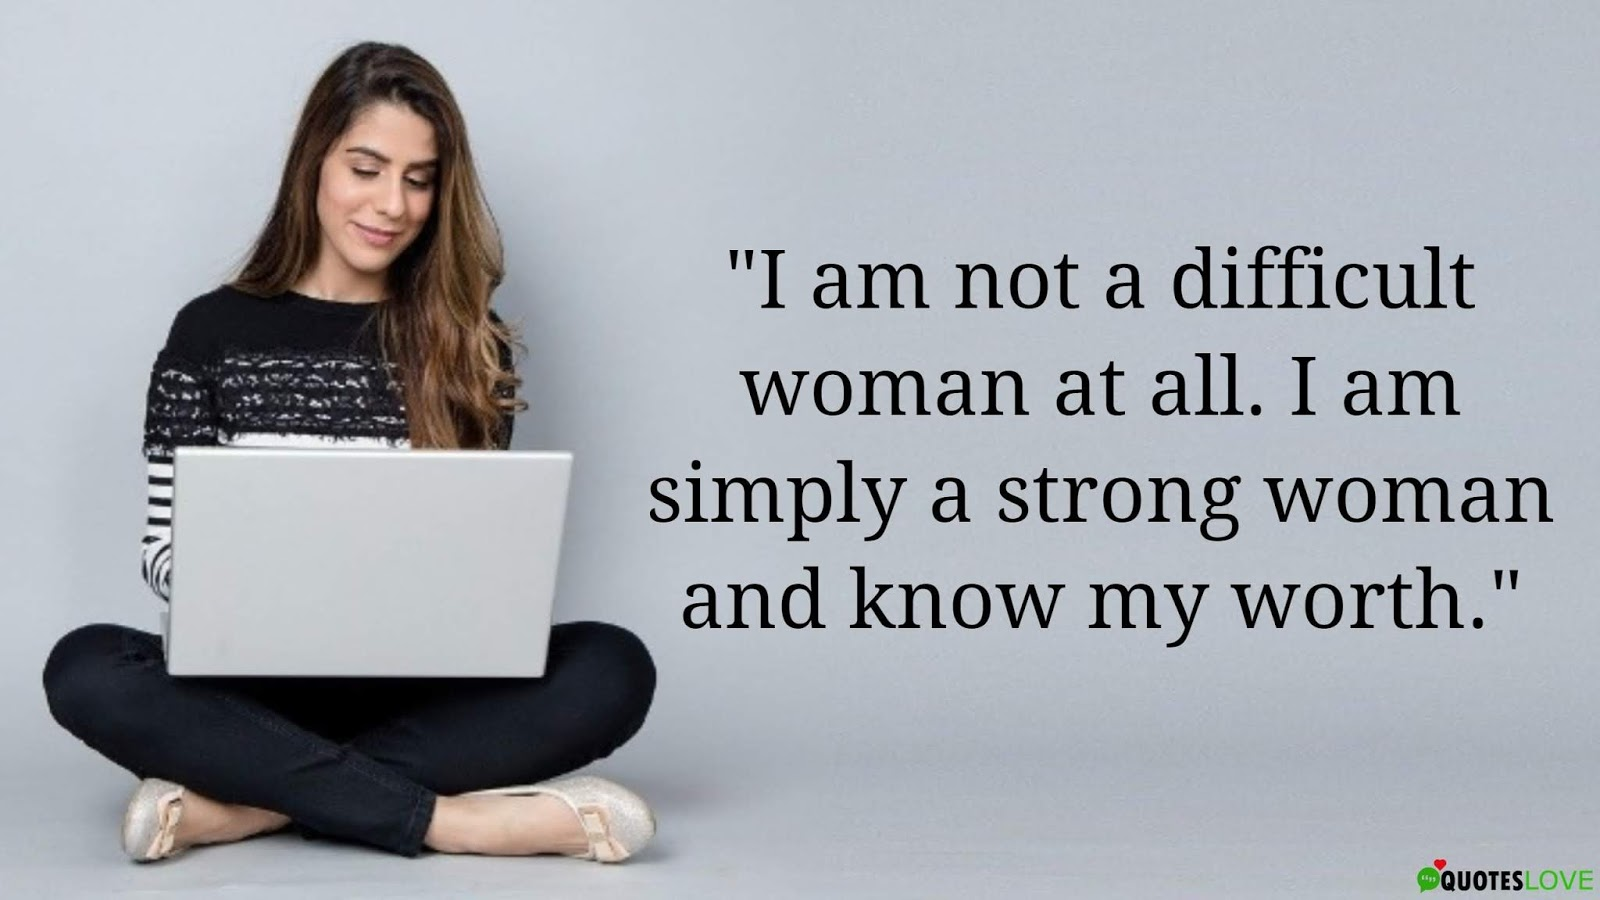 25+ (Best) Working Women Quotes To Make Them Stronger